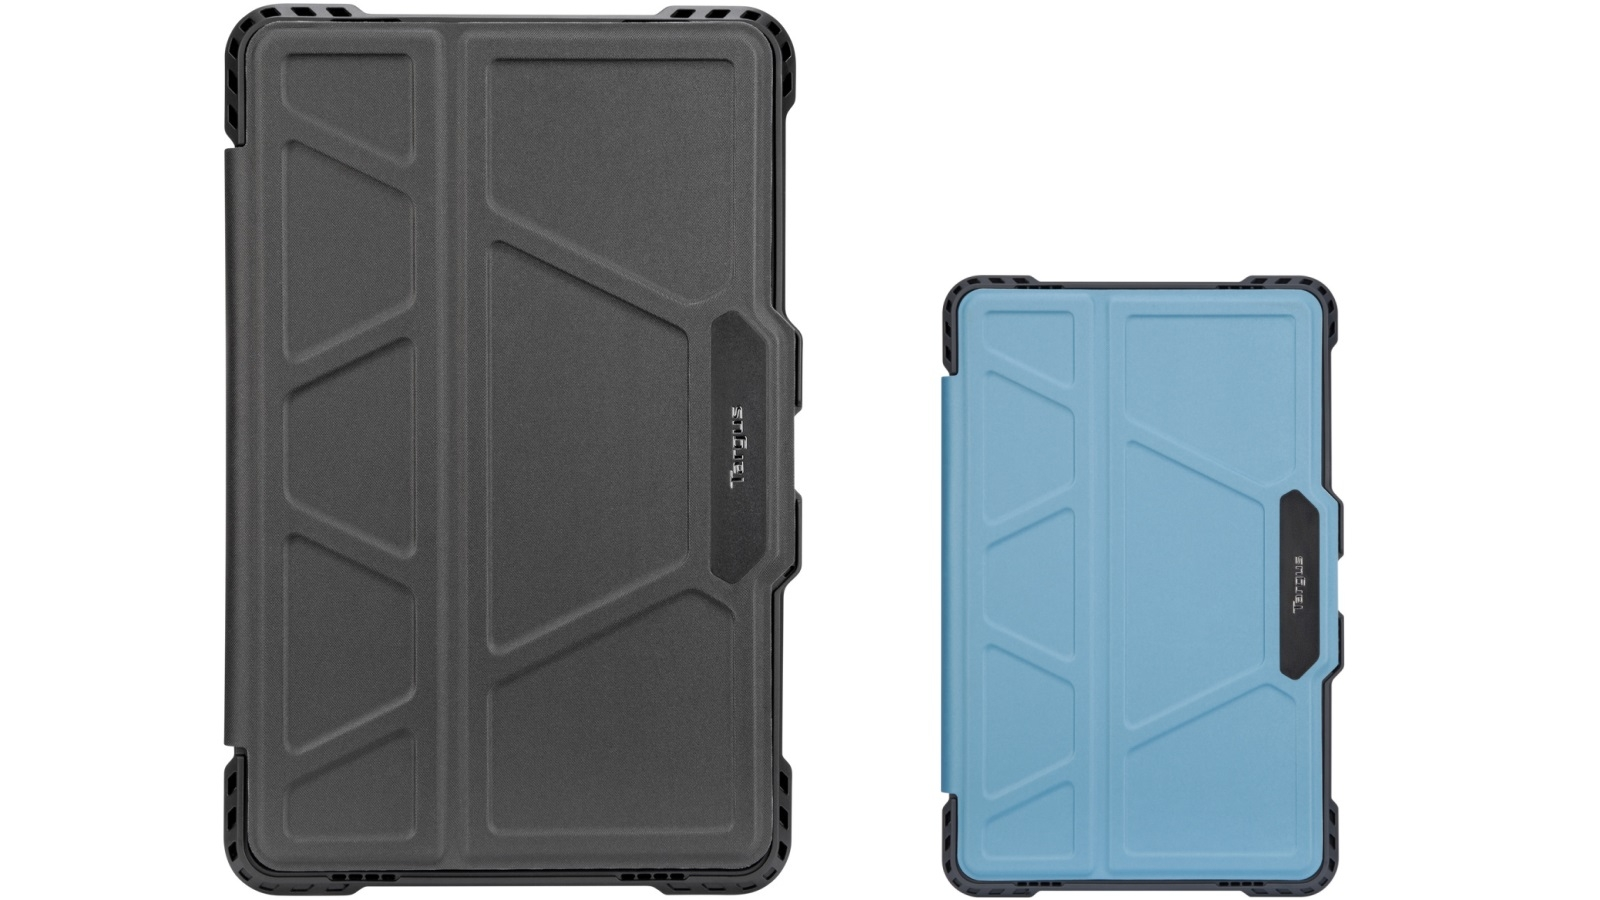 Image of Targus Protek Rotating Case for Galaxy Tab A 10.5-inch 2018